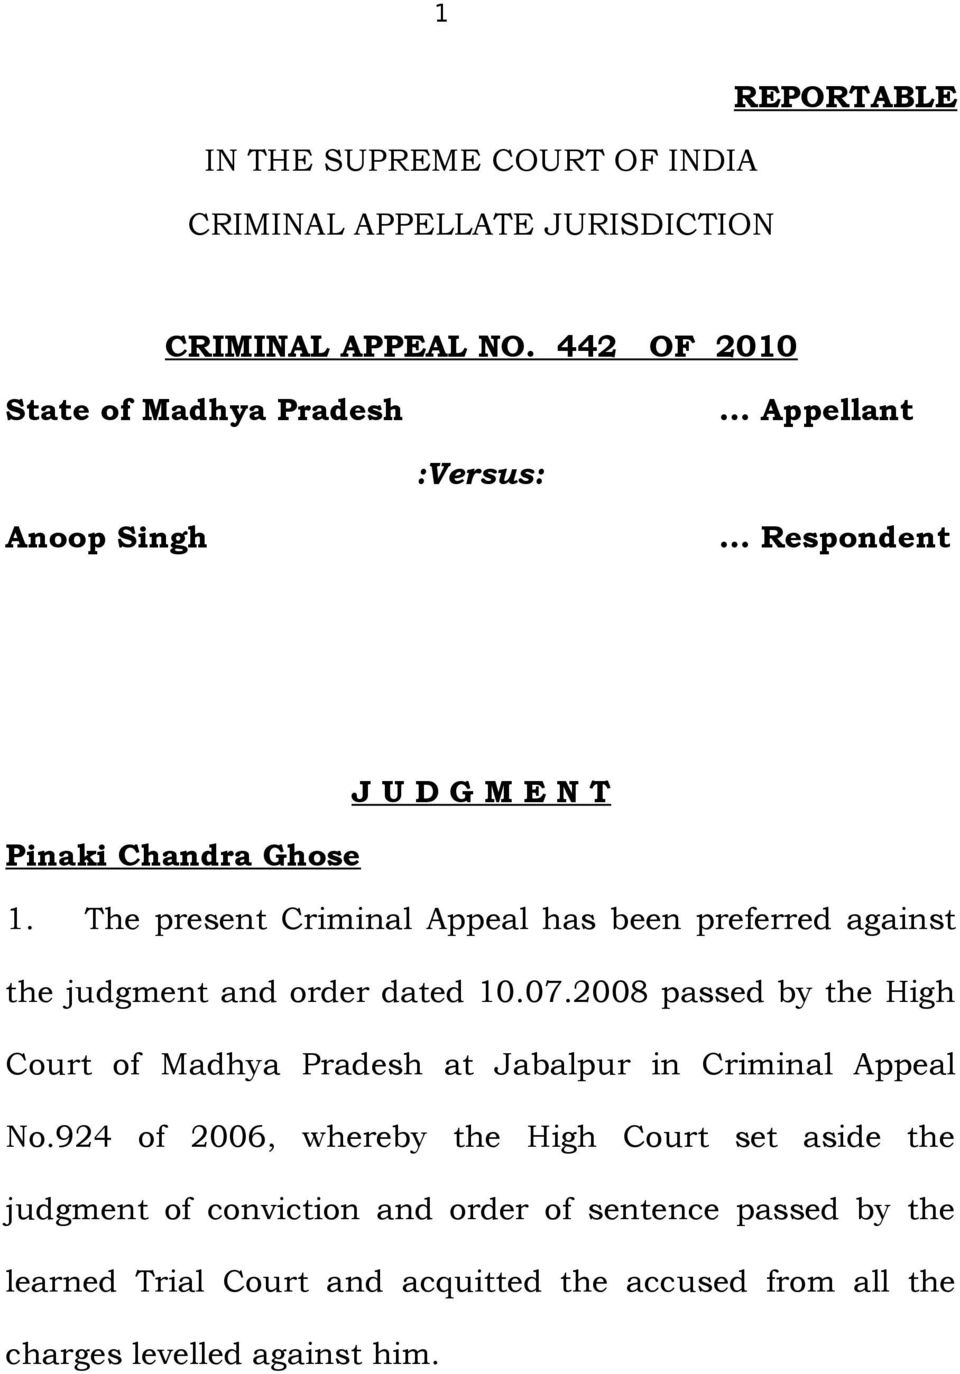 The present Criminal Appeal has been preferred against the judgment and order dated 10.07.